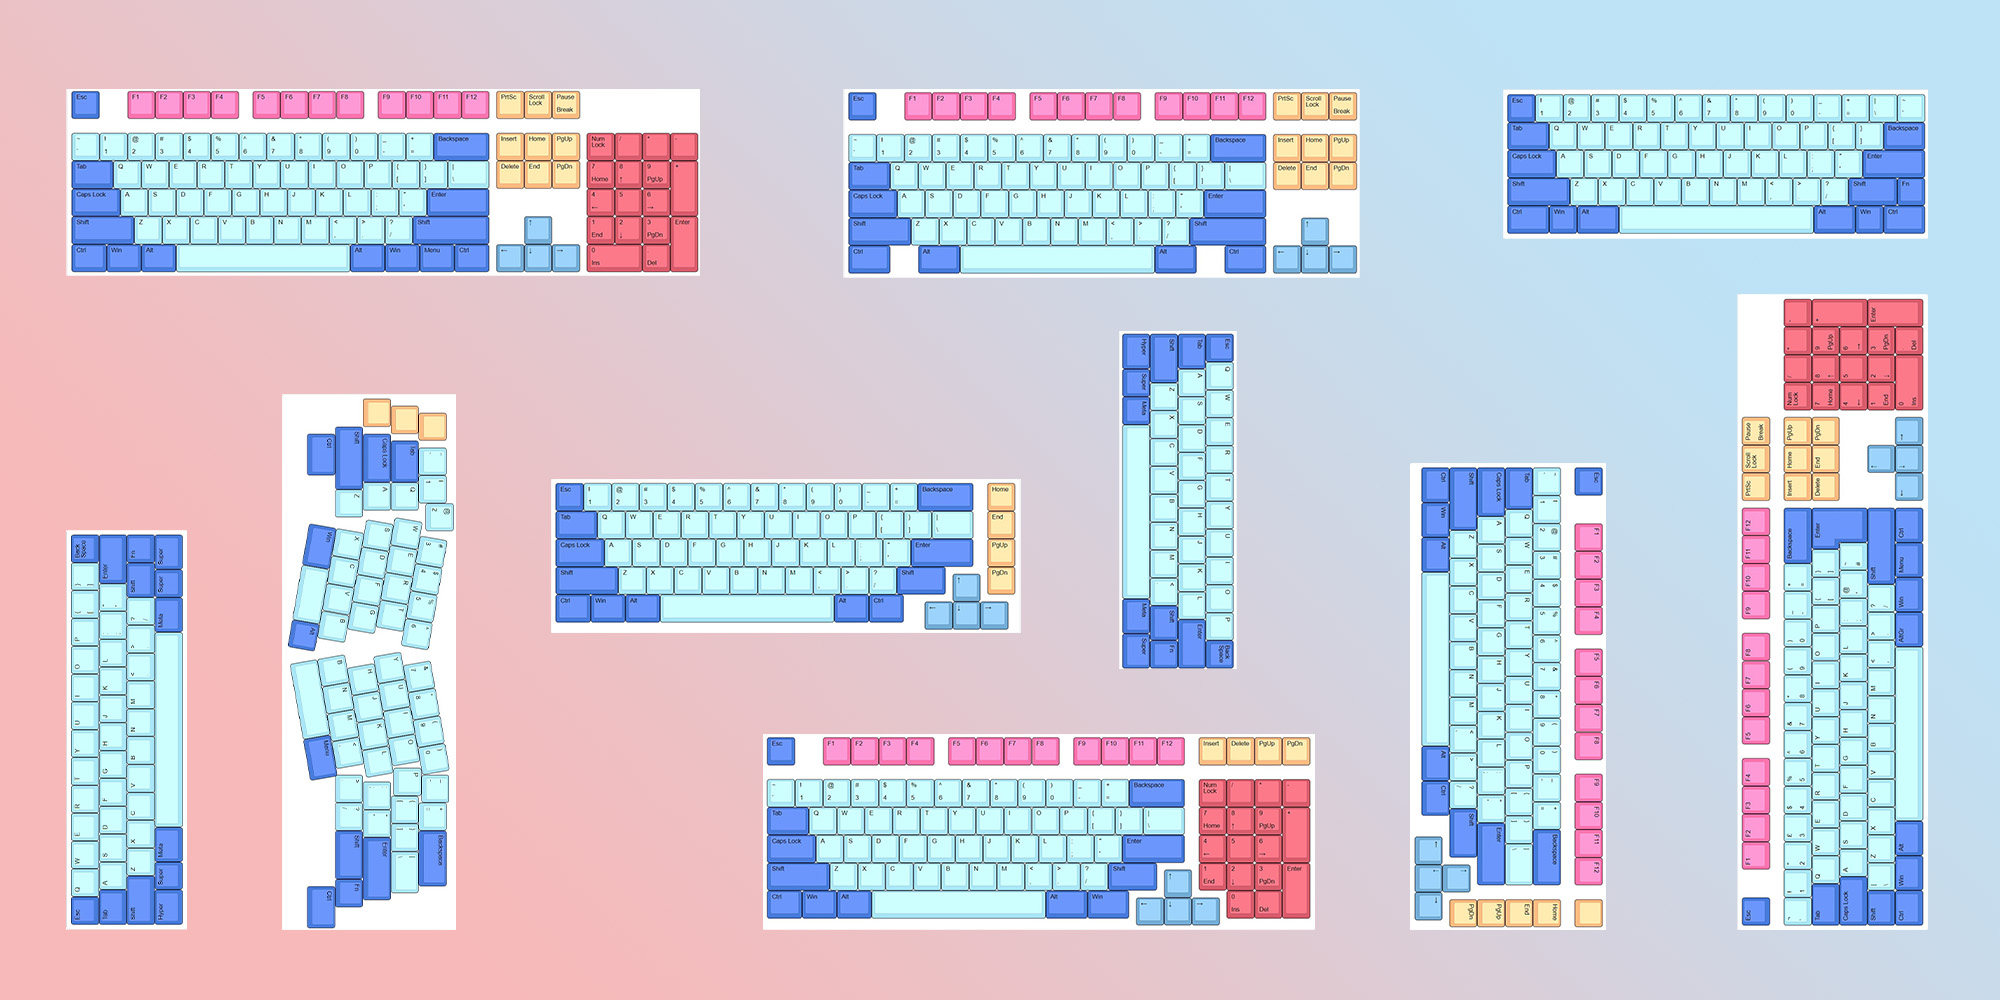 Keyboard layouts, and how not to get lost in them [Keyboard layout guide]